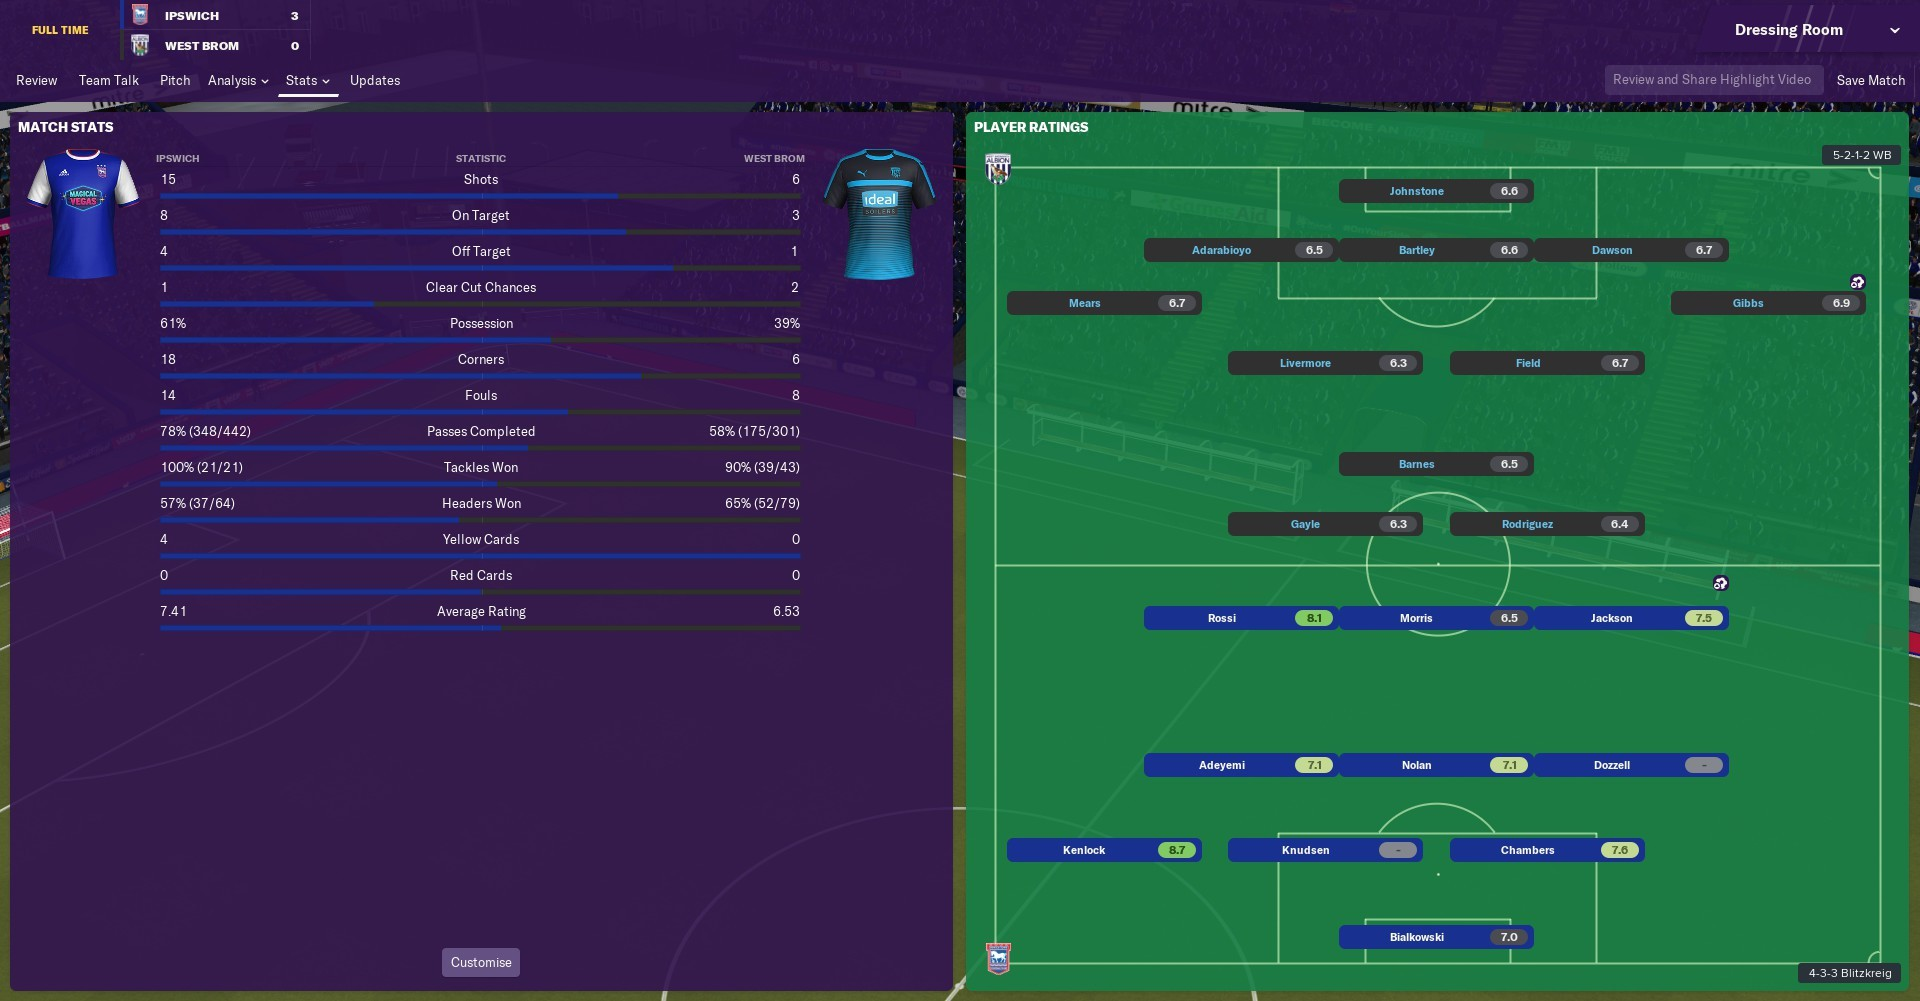 FM19 Blitkreig attack high pressing 433 - Tactics Sharing Centre